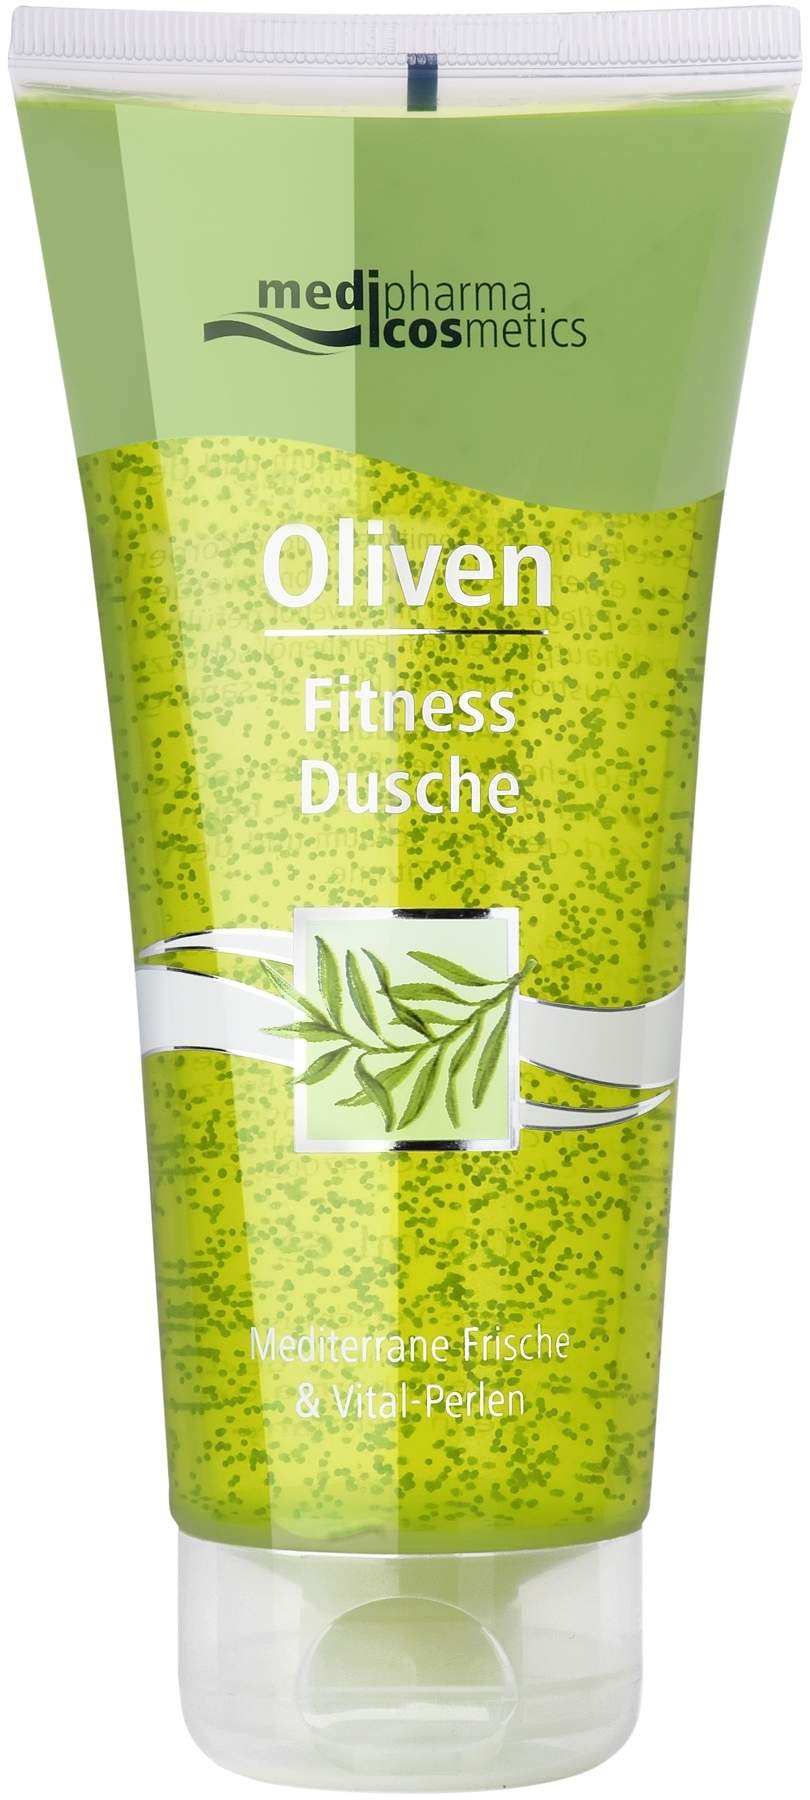 oliven l fitness dusche 200 ml kaufen volksversand versandapotheke. Black Bedroom Furniture Sets. Home Design Ideas